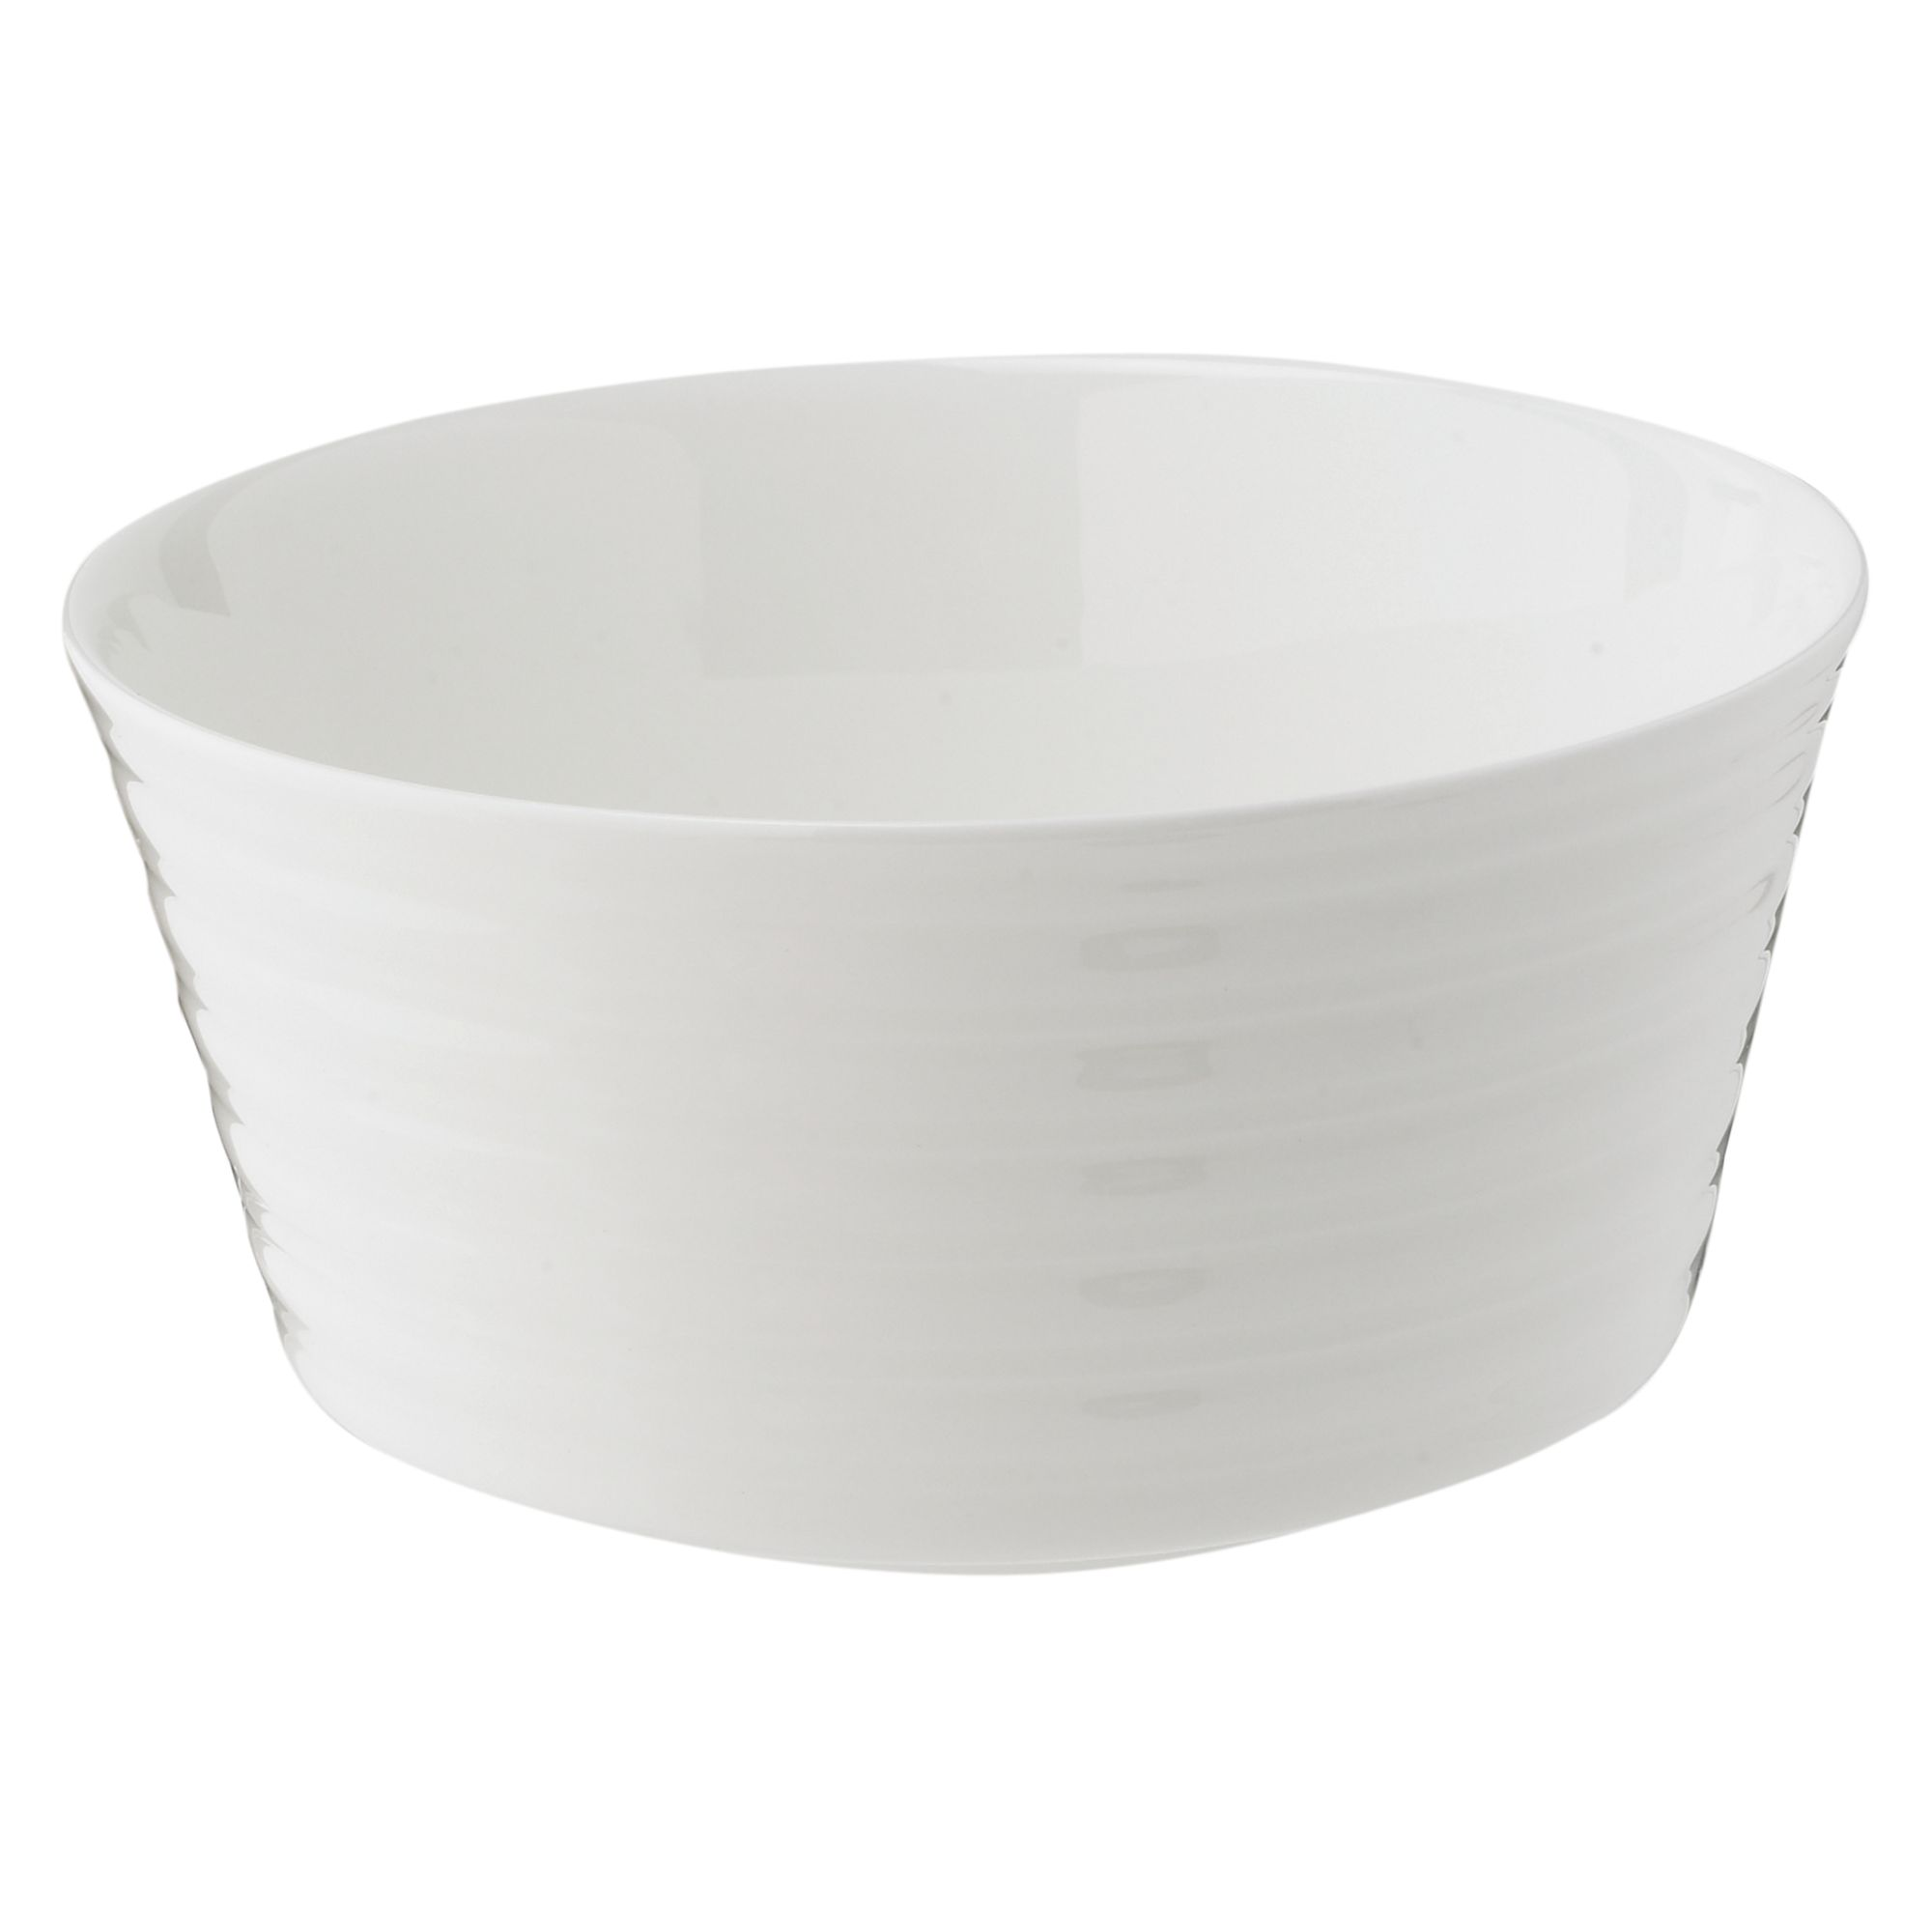 Soho Bone China Cereal Bowl